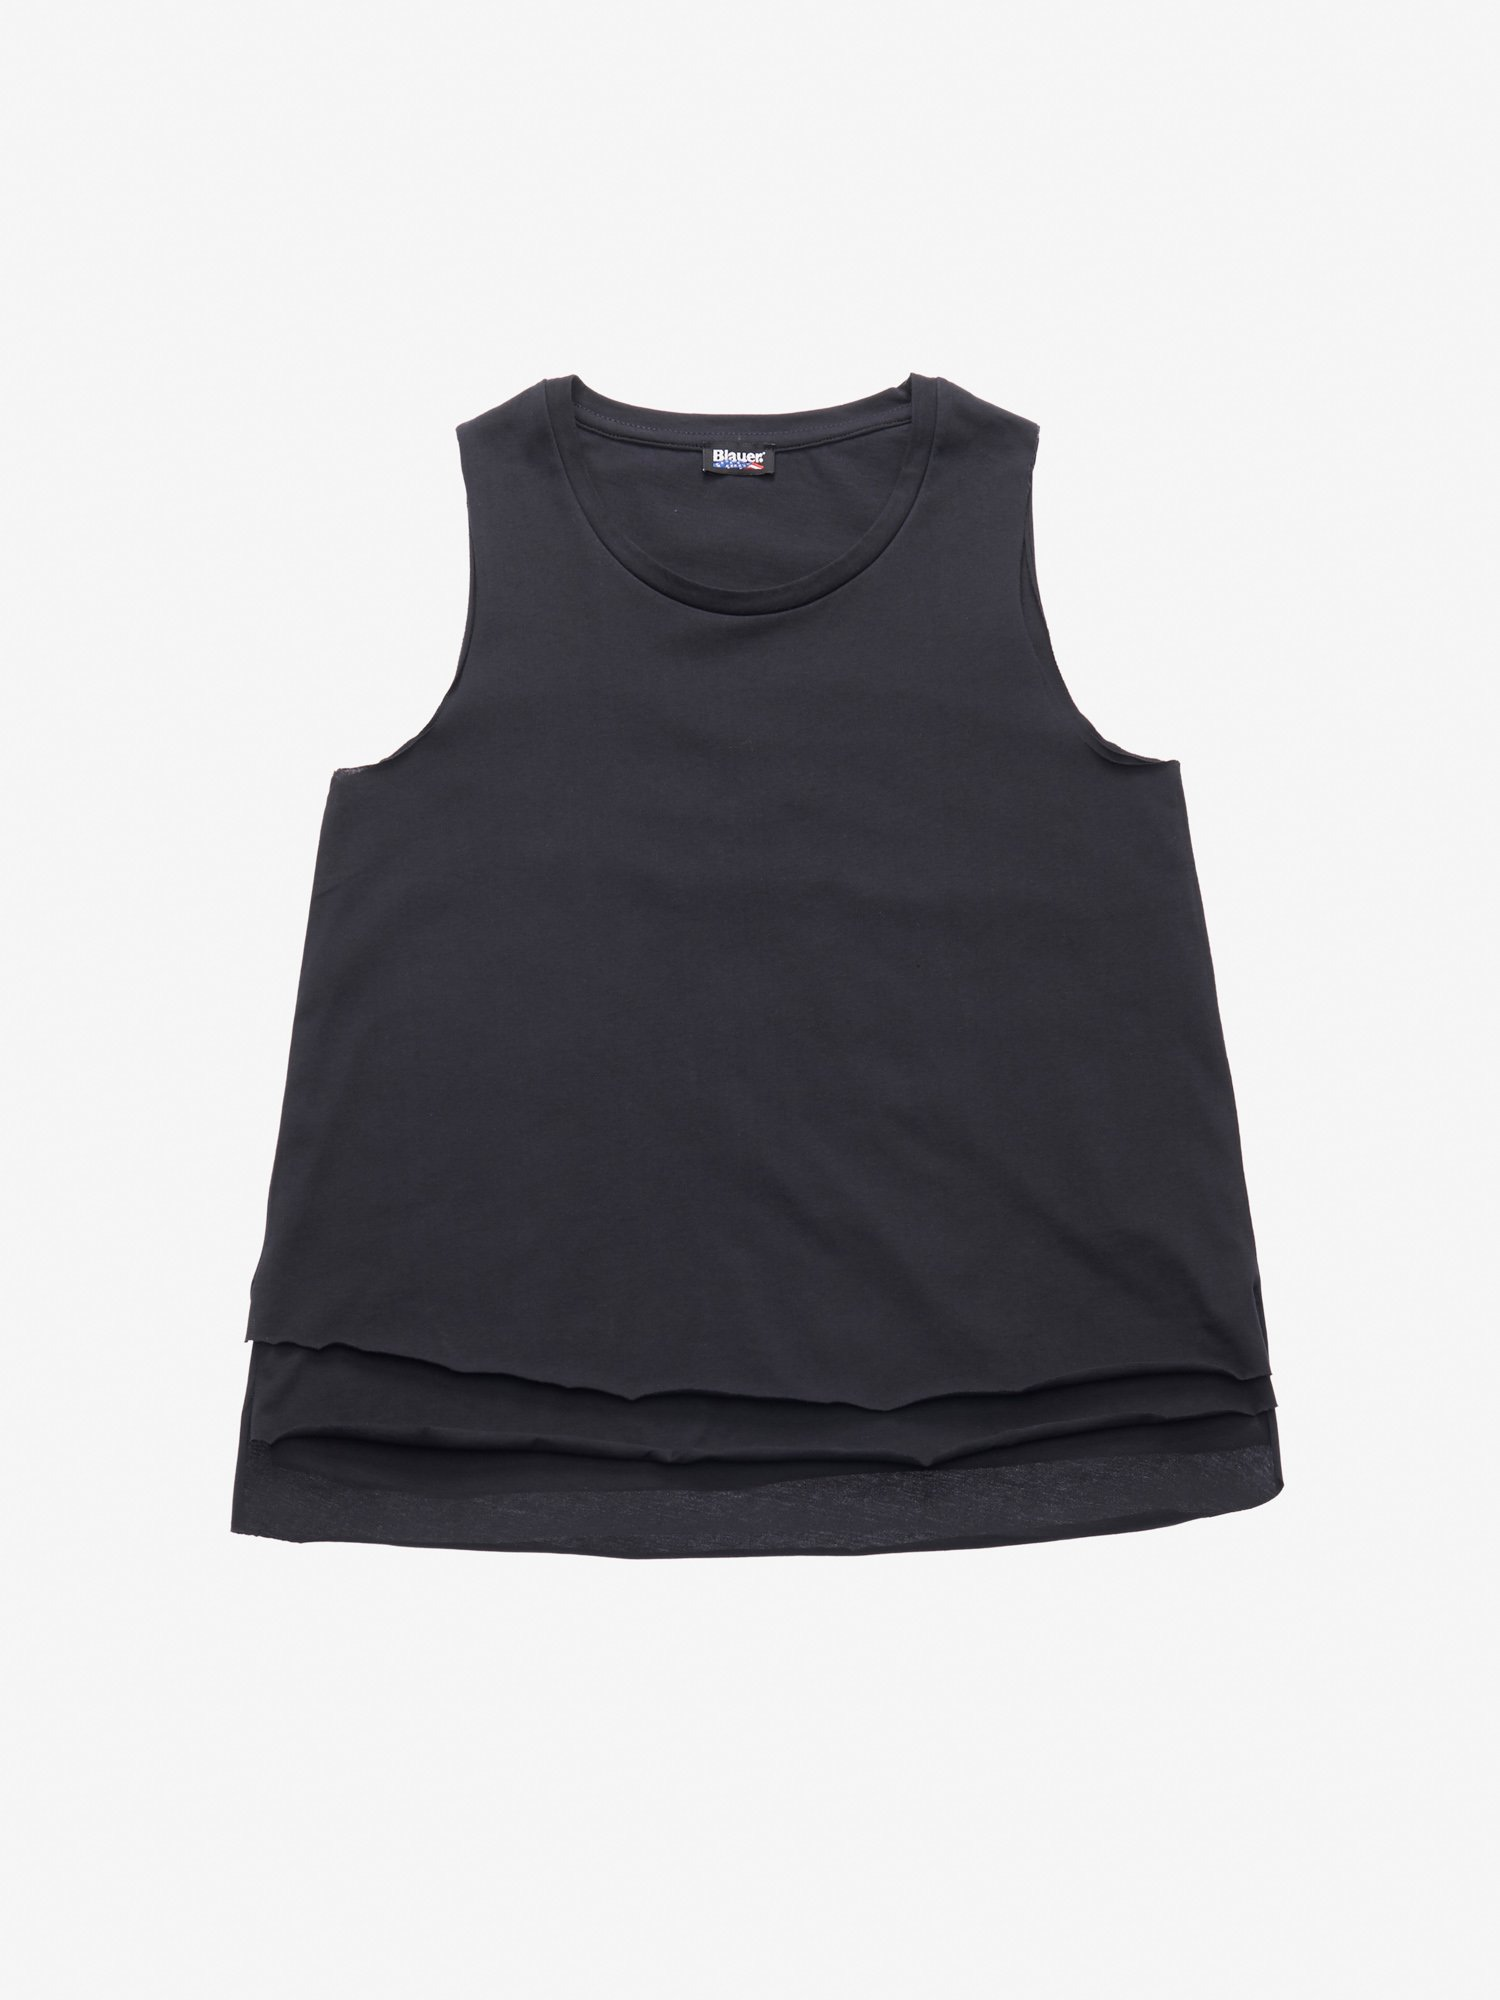 Blauer - DOUBLE COTTON TANK TOP - Black - Blauer